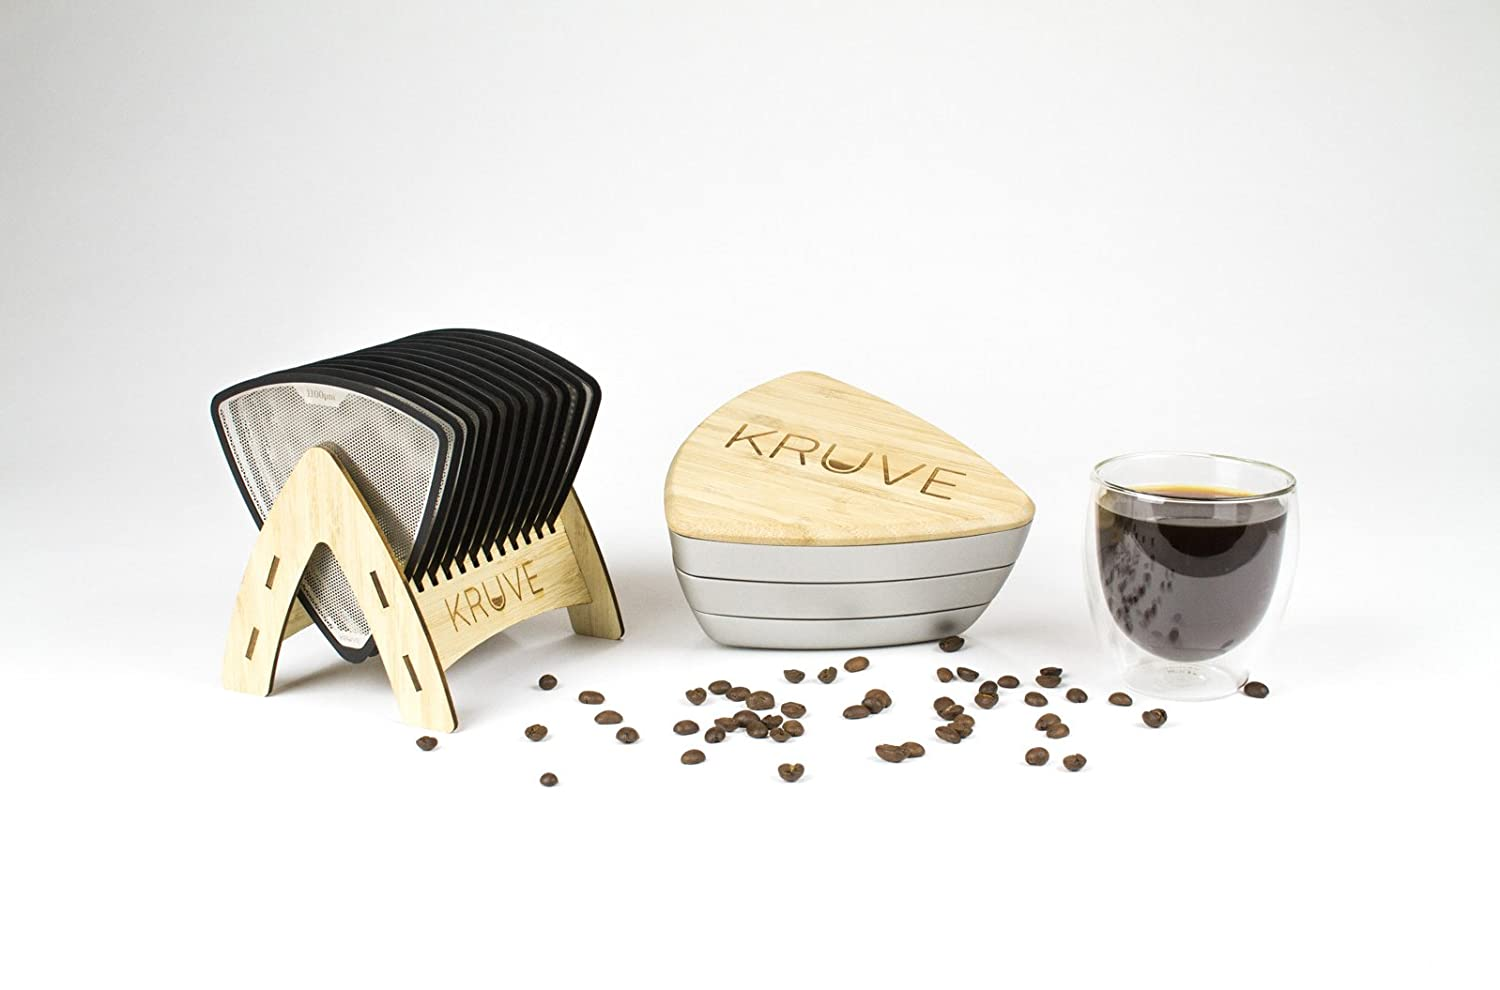 Calibrate Refine Coffee Grinds or Home Brewers 12 Sieves Black for Cafes Baristas KRUVE Sifter Twelve Helps accurately Measure